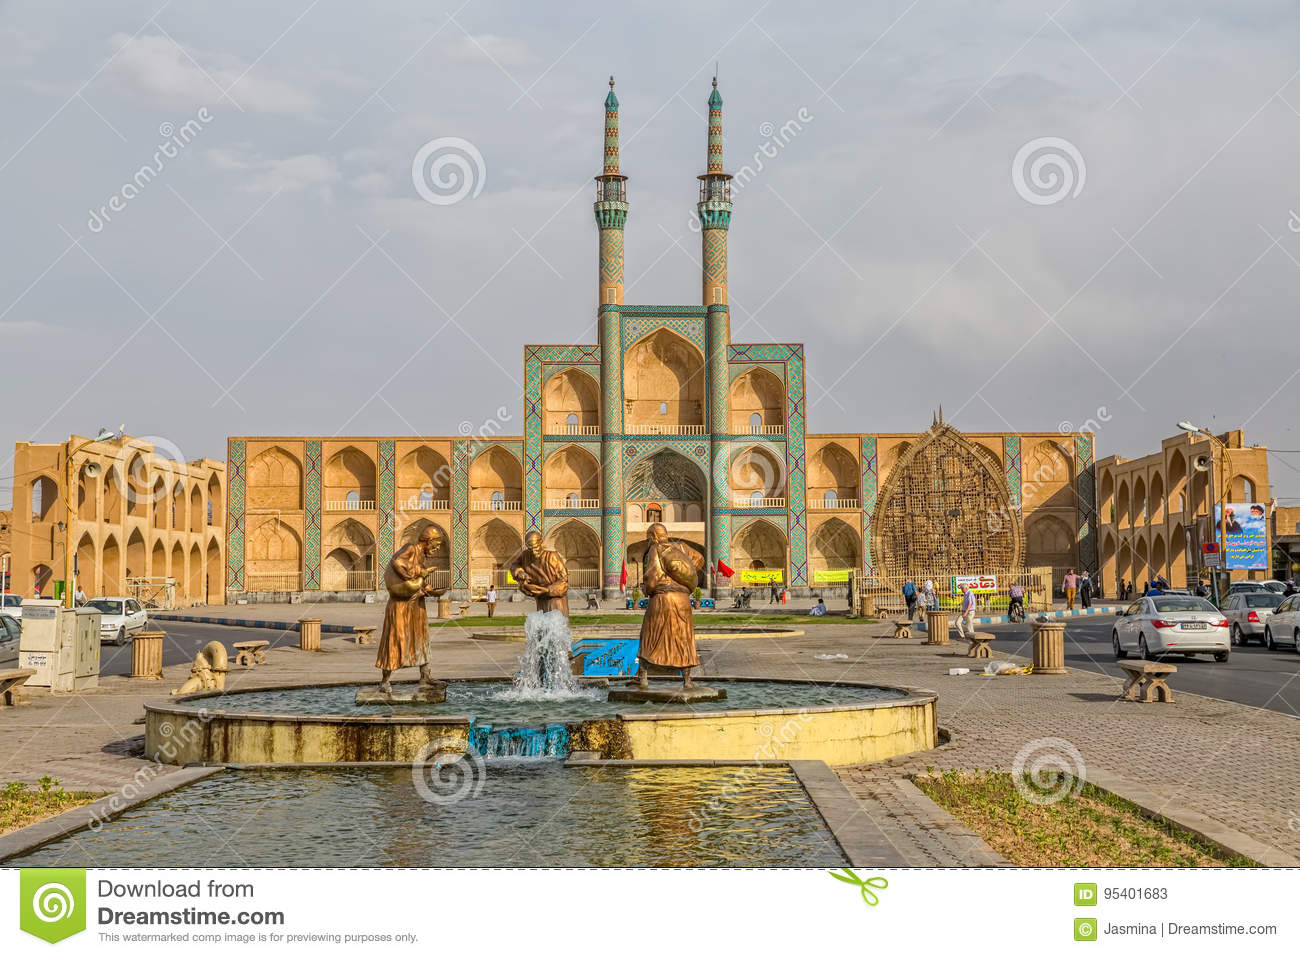 Image of: Elderly Three Old Travelers Statues In Yazd Dreamstimecom Three Old Travelers Statues In Yazd Editorial Stock Photo Image Of